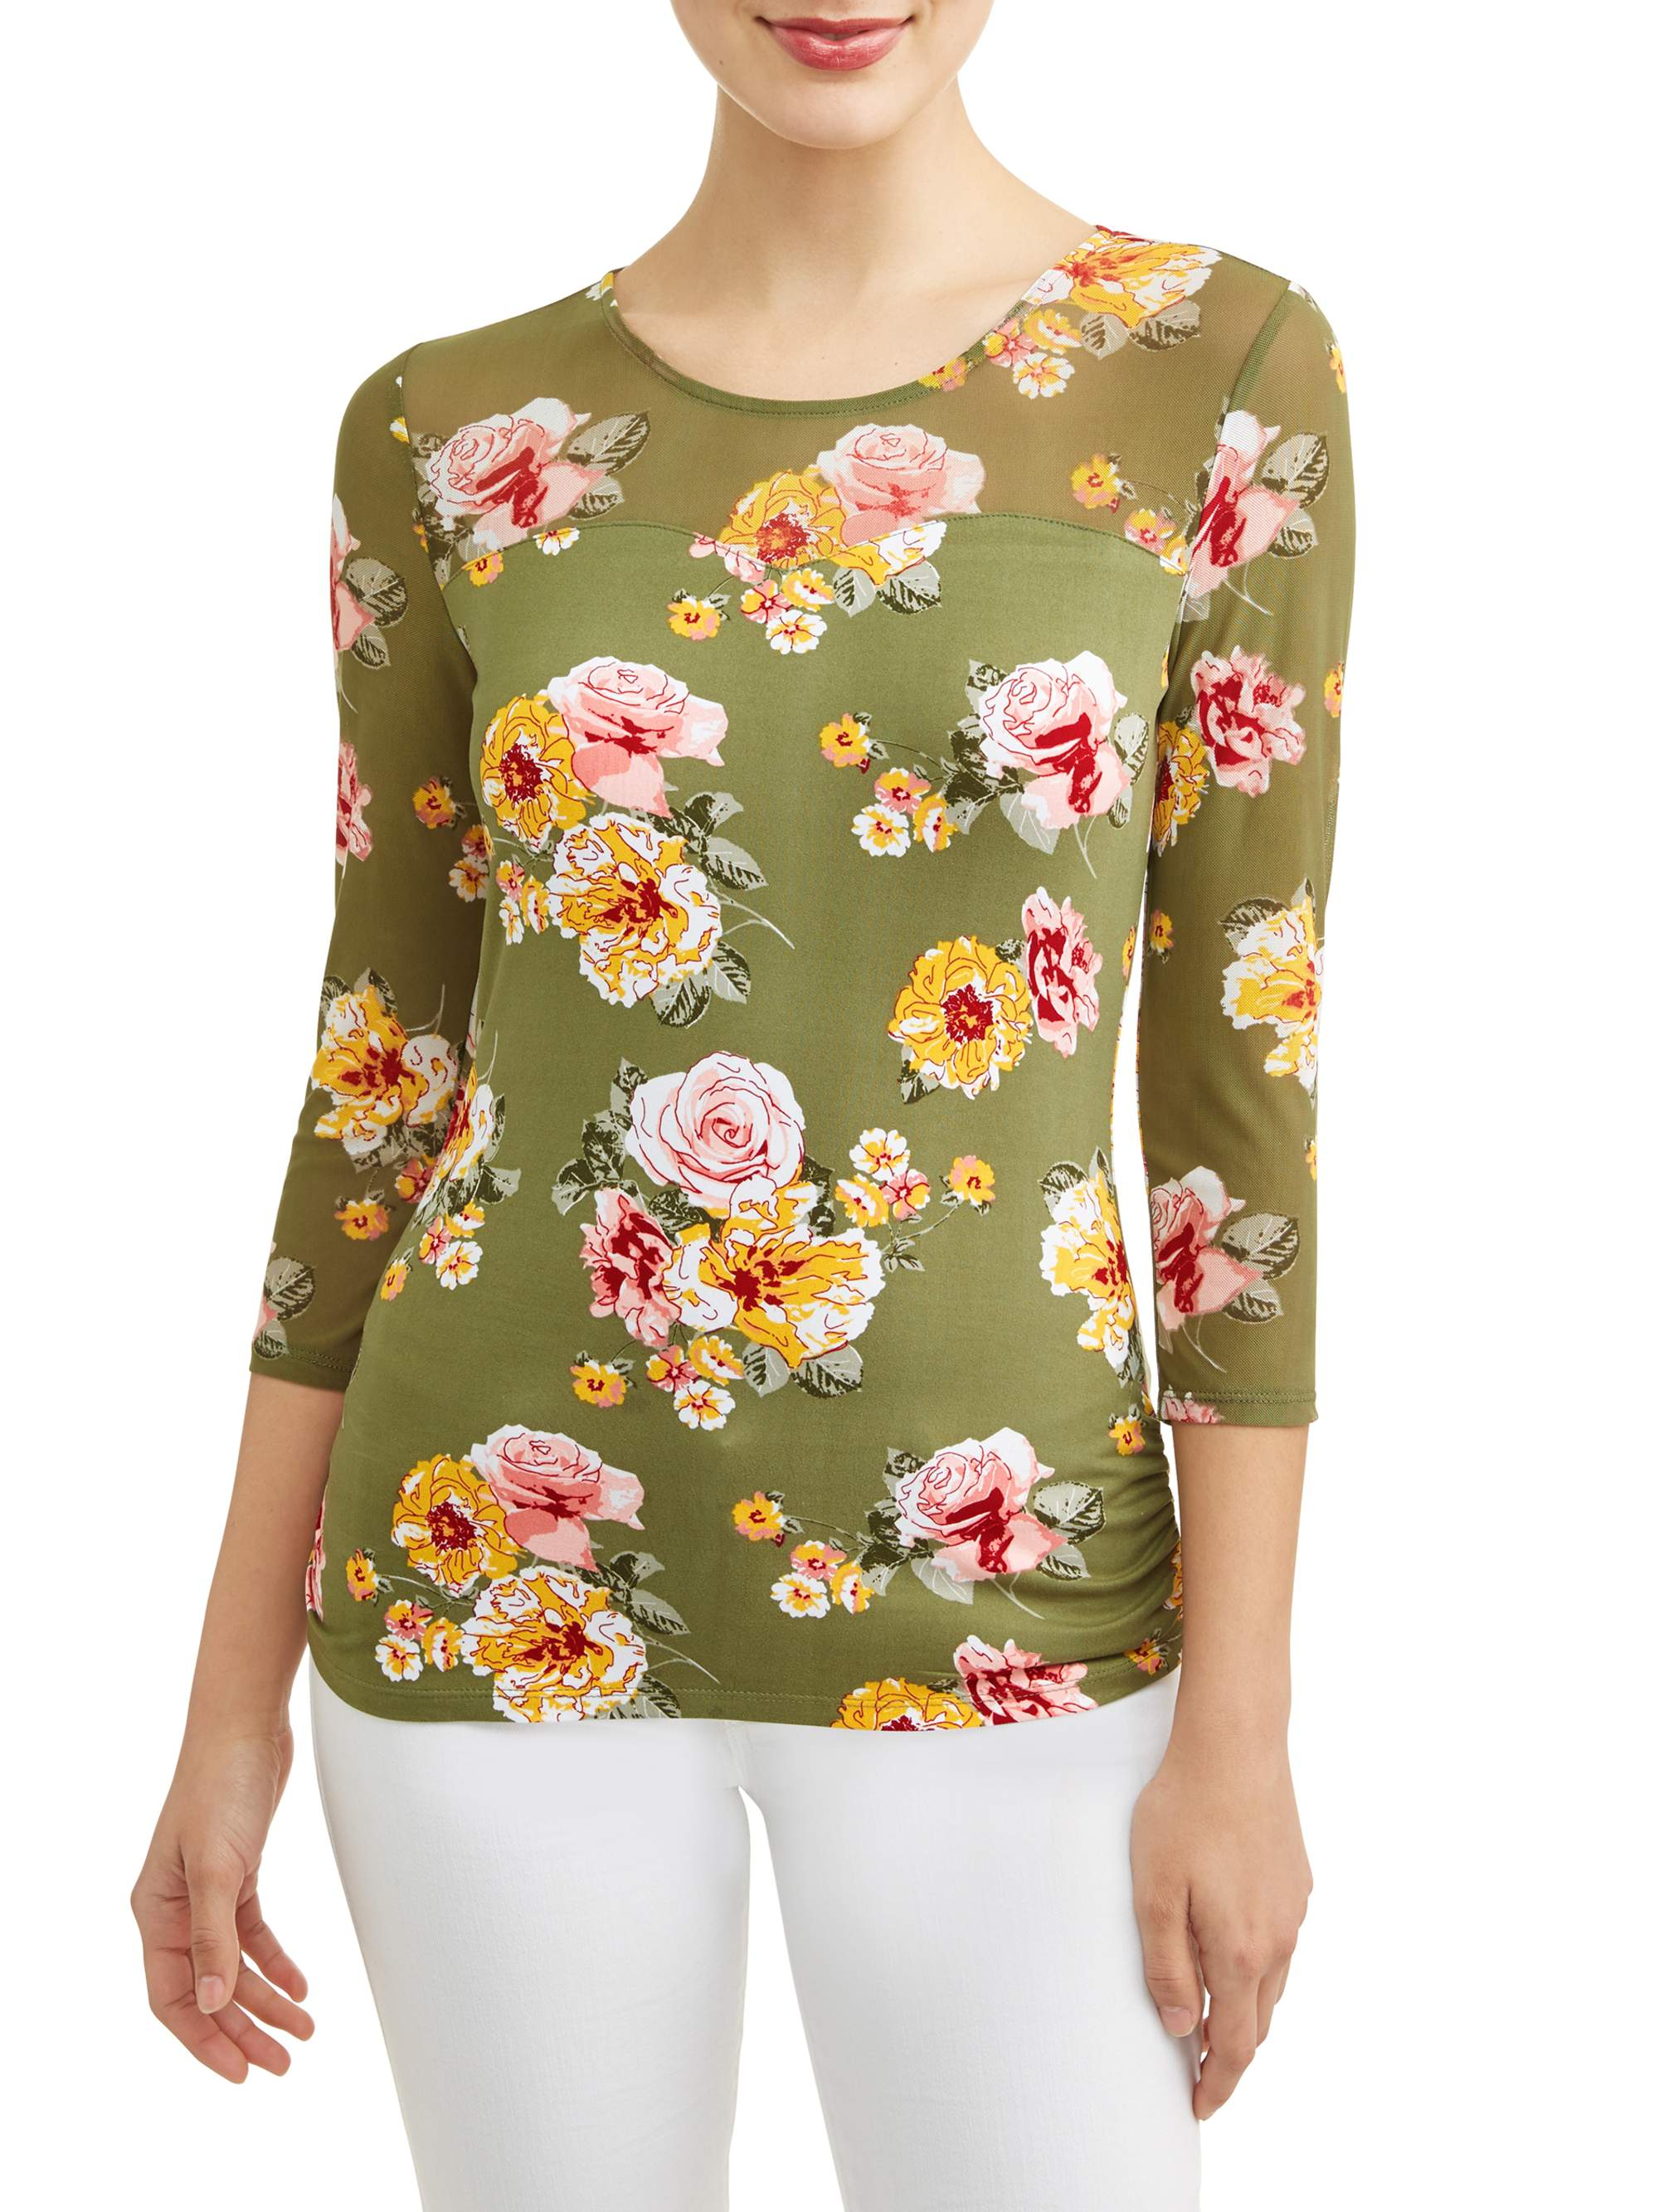 Juniors' Floral Printed Criss Cross Caged Back 3/4 Sleeve T-Shirt